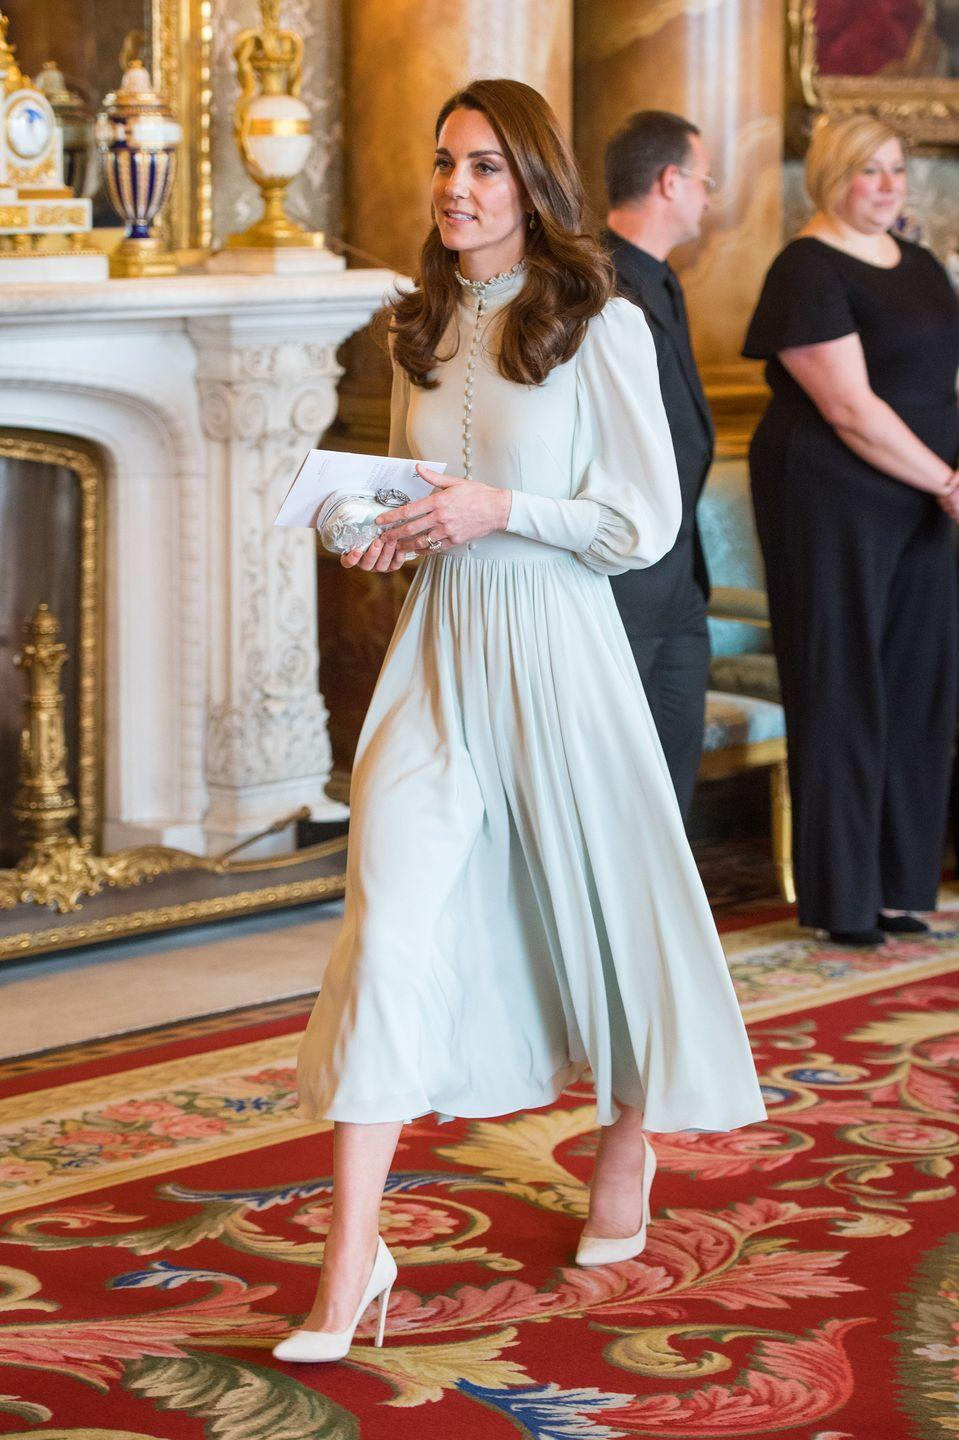 """<p>The Duchess wore <a href=""""https://www.townandcountrymag.com/style/fashion-trends/a26630013/kate-middleton-blue-dress-princes-charles-investiture-anniversary/"""" rel=""""nofollow noopener"""" target=""""_blank"""" data-ylk=""""slk:a pale blue dress"""" class=""""link rapid-noclick-resp"""">a pale blue dress</a> with nude heels and a small clutch to a celebration at Buckingham Palace in honor of the <a href=""""https://www.townandcountrymag.com/society/tradition/a26576659/prince-charles-prince-wales-investiture-1969-true-story/"""" rel=""""nofollow noopener"""" target=""""_blank"""" data-ylk=""""slk:50th anniversary of Prince Charles's investiture"""" class=""""link rapid-noclick-resp"""">50th anniversary of Prince Charles's investiture</a> as the Prince of Wales.</p>"""